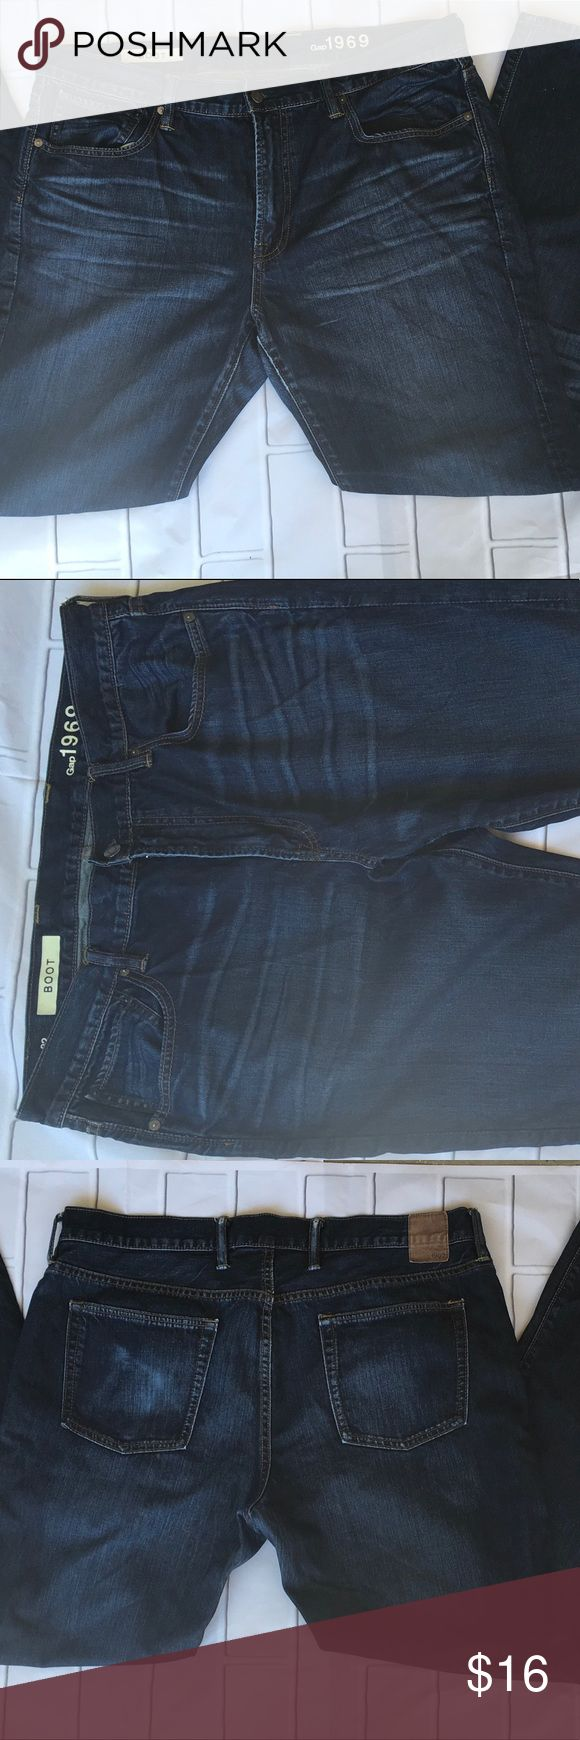 GAP Men 1969 Standard Fit Jeans Size 38X32 GAP Men 1969 Standard Fit Jeans, Medium wash, Factory Distressing, Size 38X32, 100% Cotton, Ringspun Denim, Machine wash inside out cold water, clean and Smoke Free Home GAP Jeans Bootcut